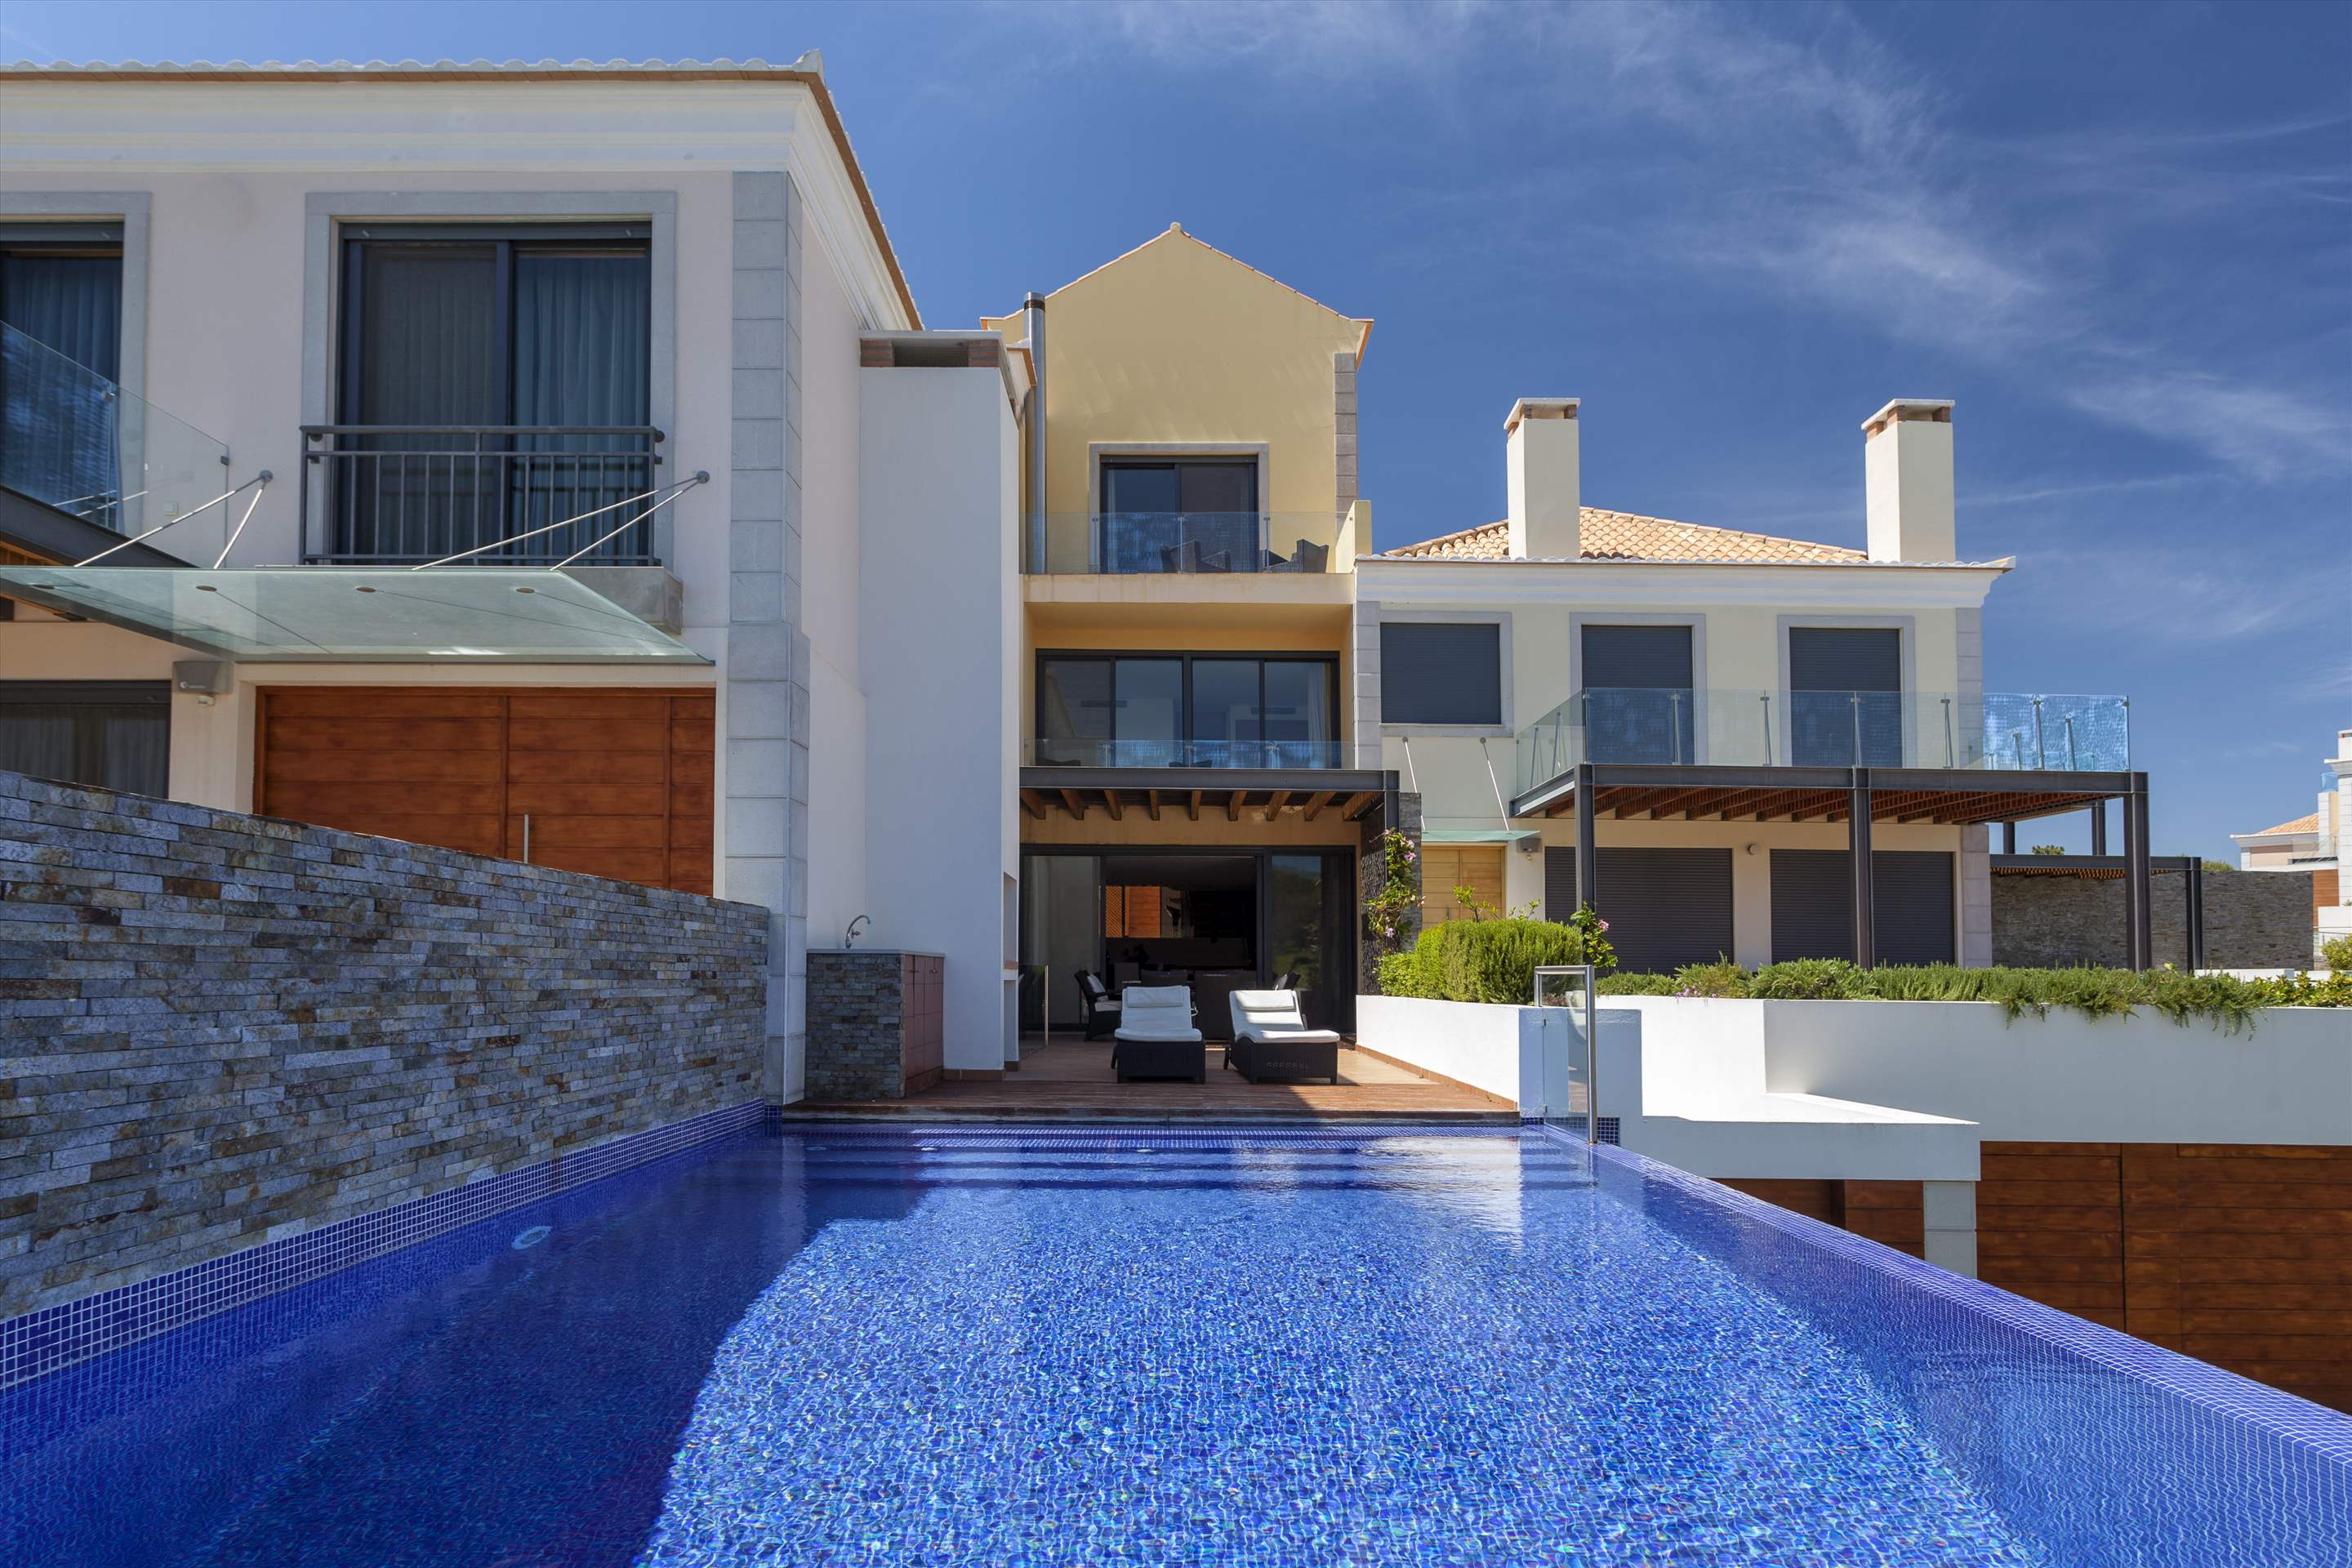 Villa Emily, 3 bedroom villa in Vale do Lobo, Algarve Photo #1